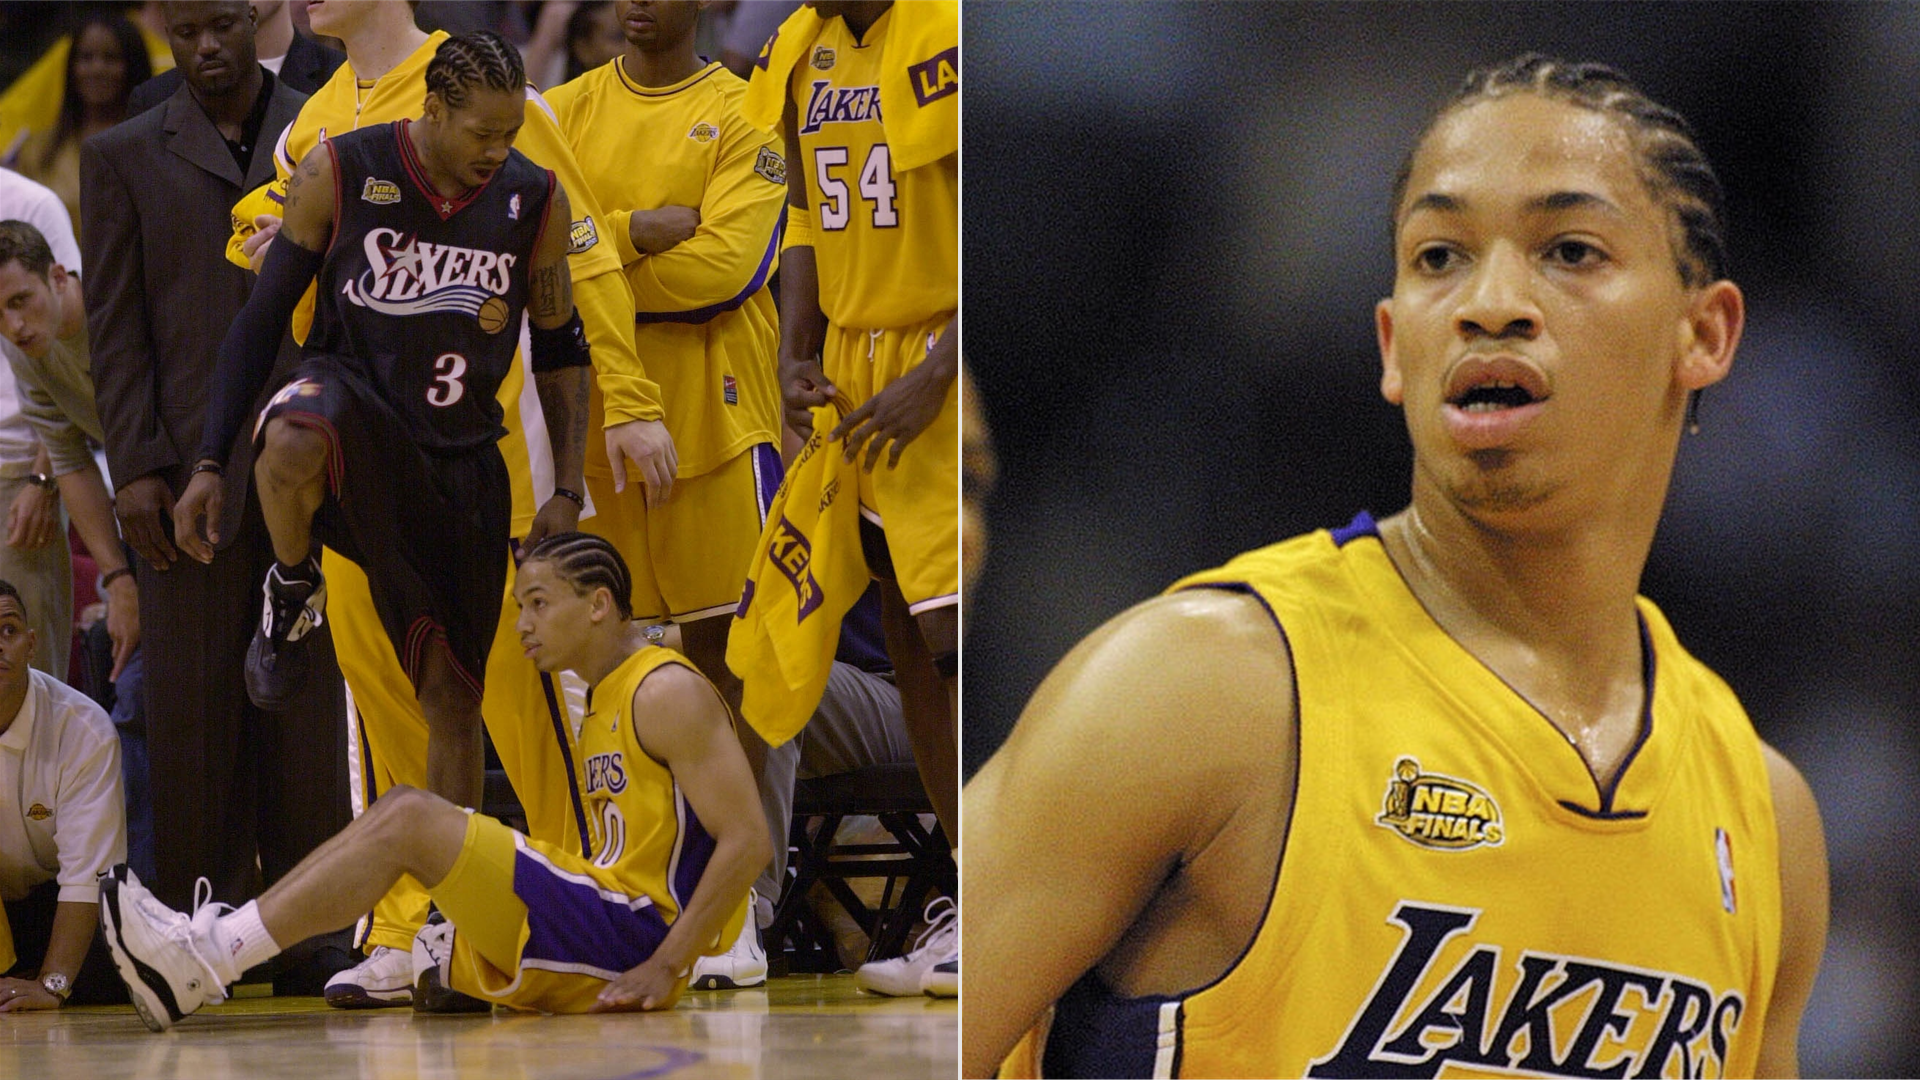 Allen Iverson scored 48 points against Tyronn Lue and the Lakers in Game 1 of the 2001 NBA Finals.